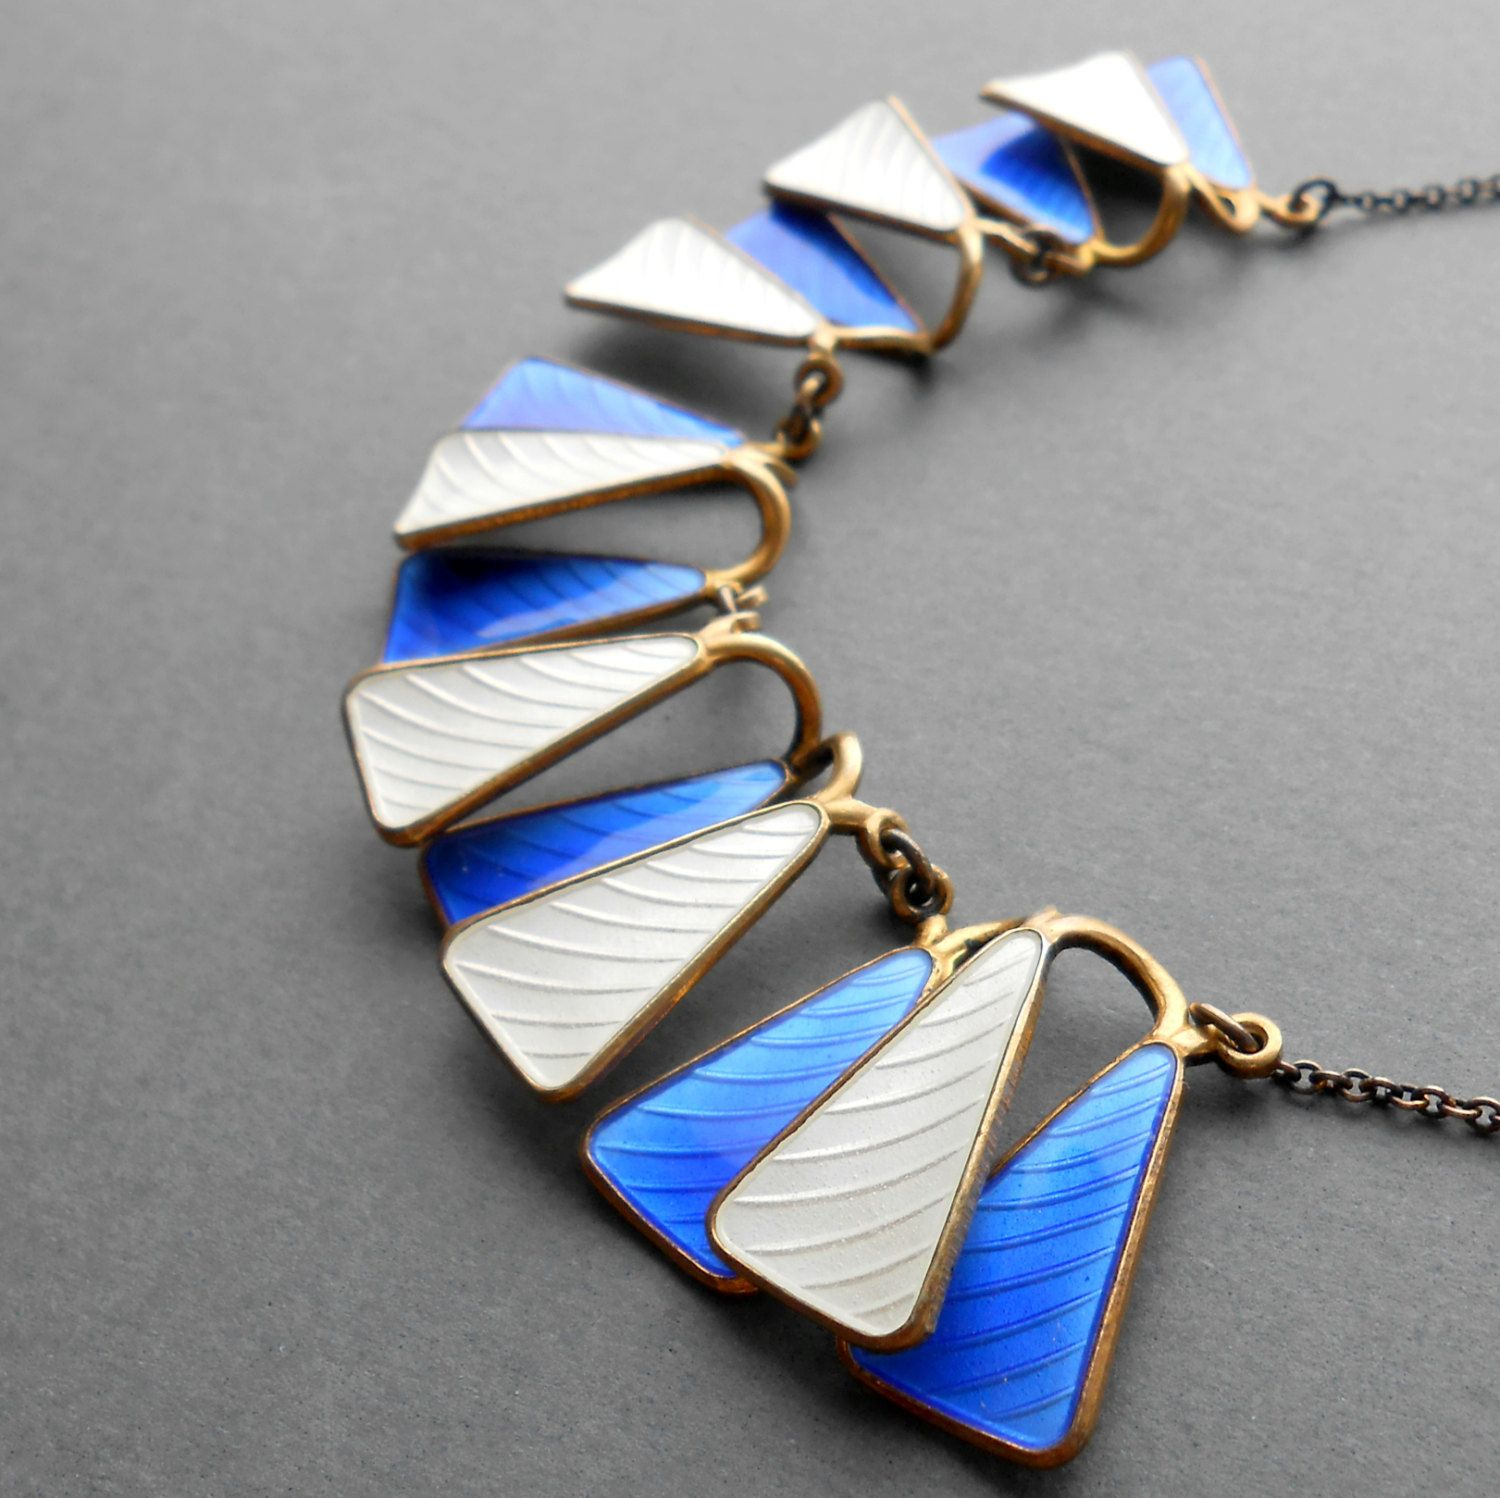 Scandinavian Modernist Jewelry Sterling Enamel Necklace Aksel Holmsen Norway Geometric Scandinavian Jewelry Vintage Modernist Jewelry Modernist Jewelry